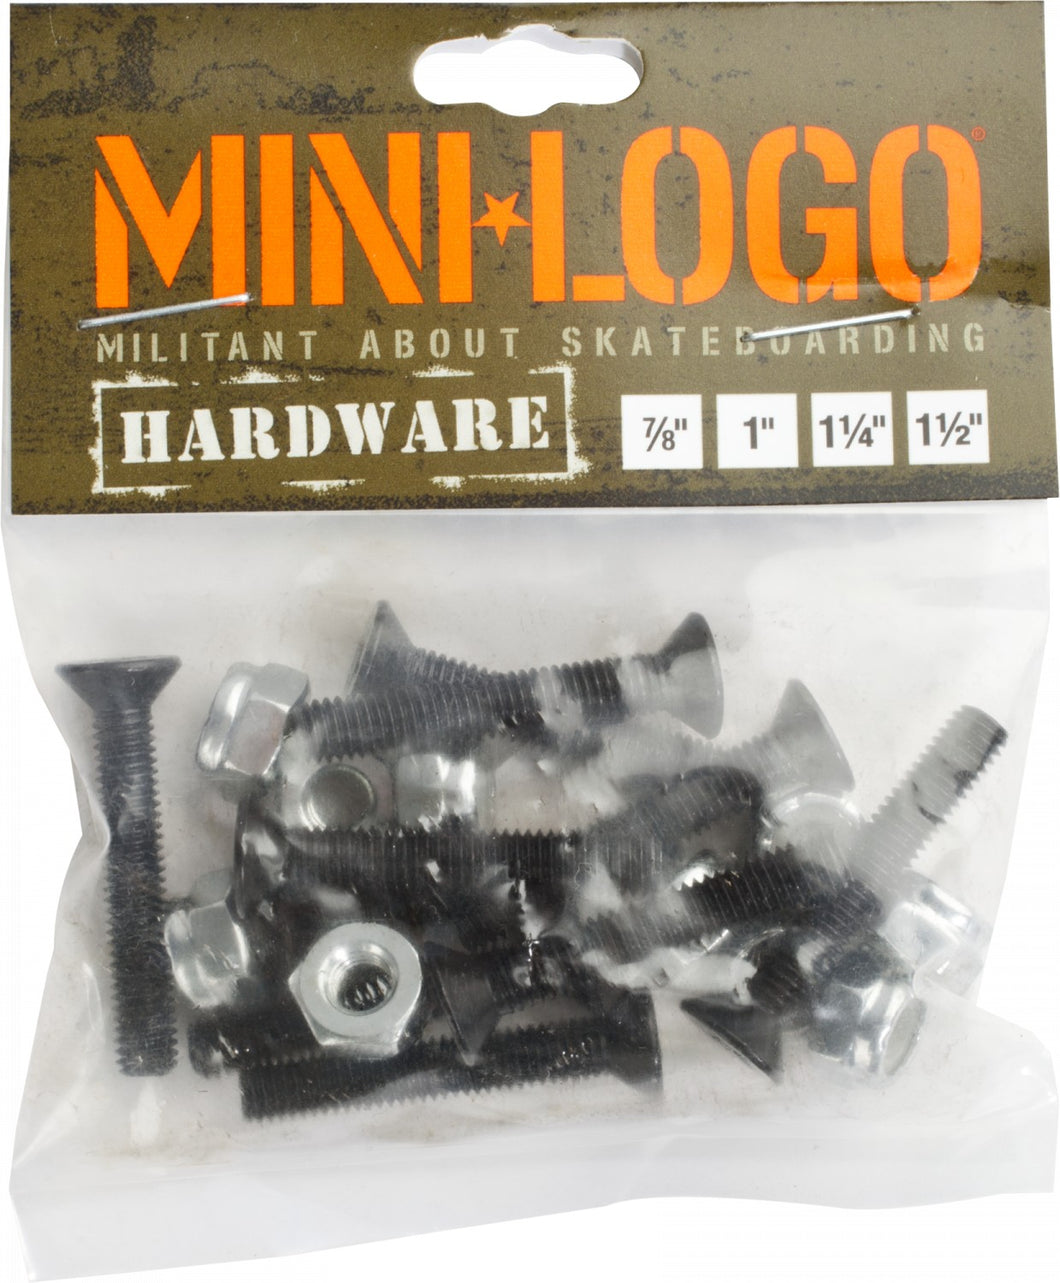 Mini Logo Hardware